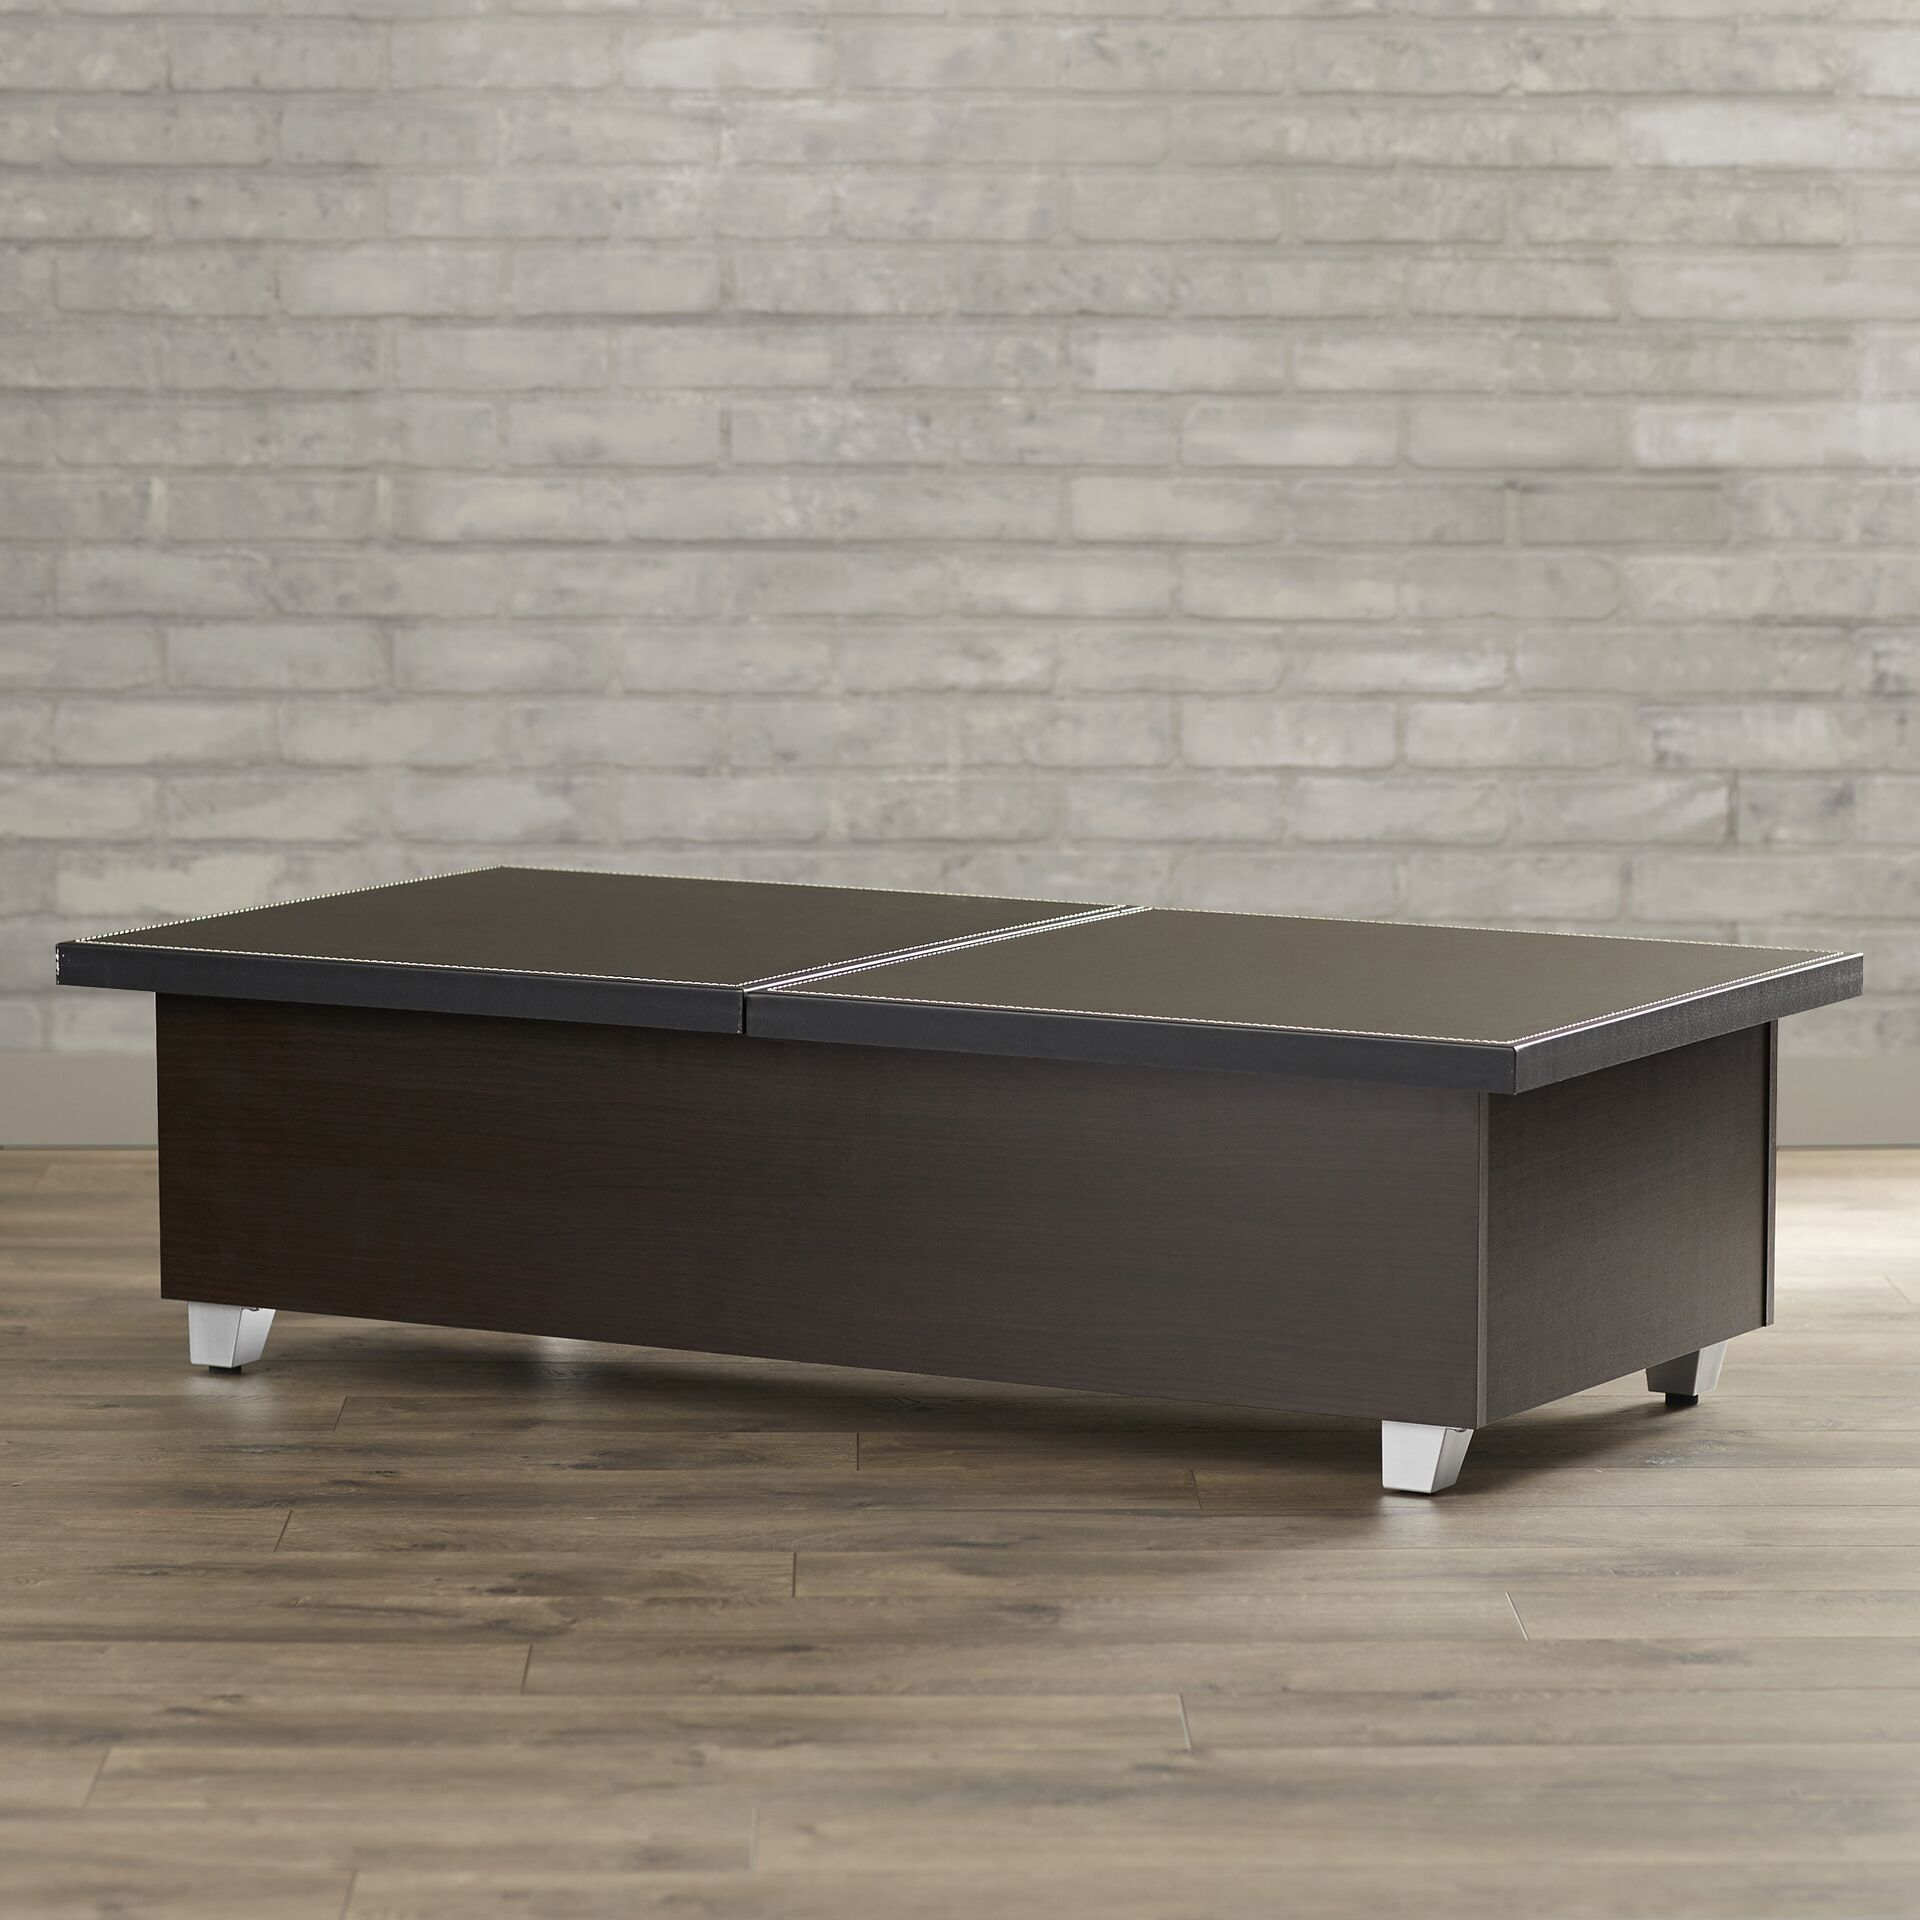 Elser Coffee Table with Storage